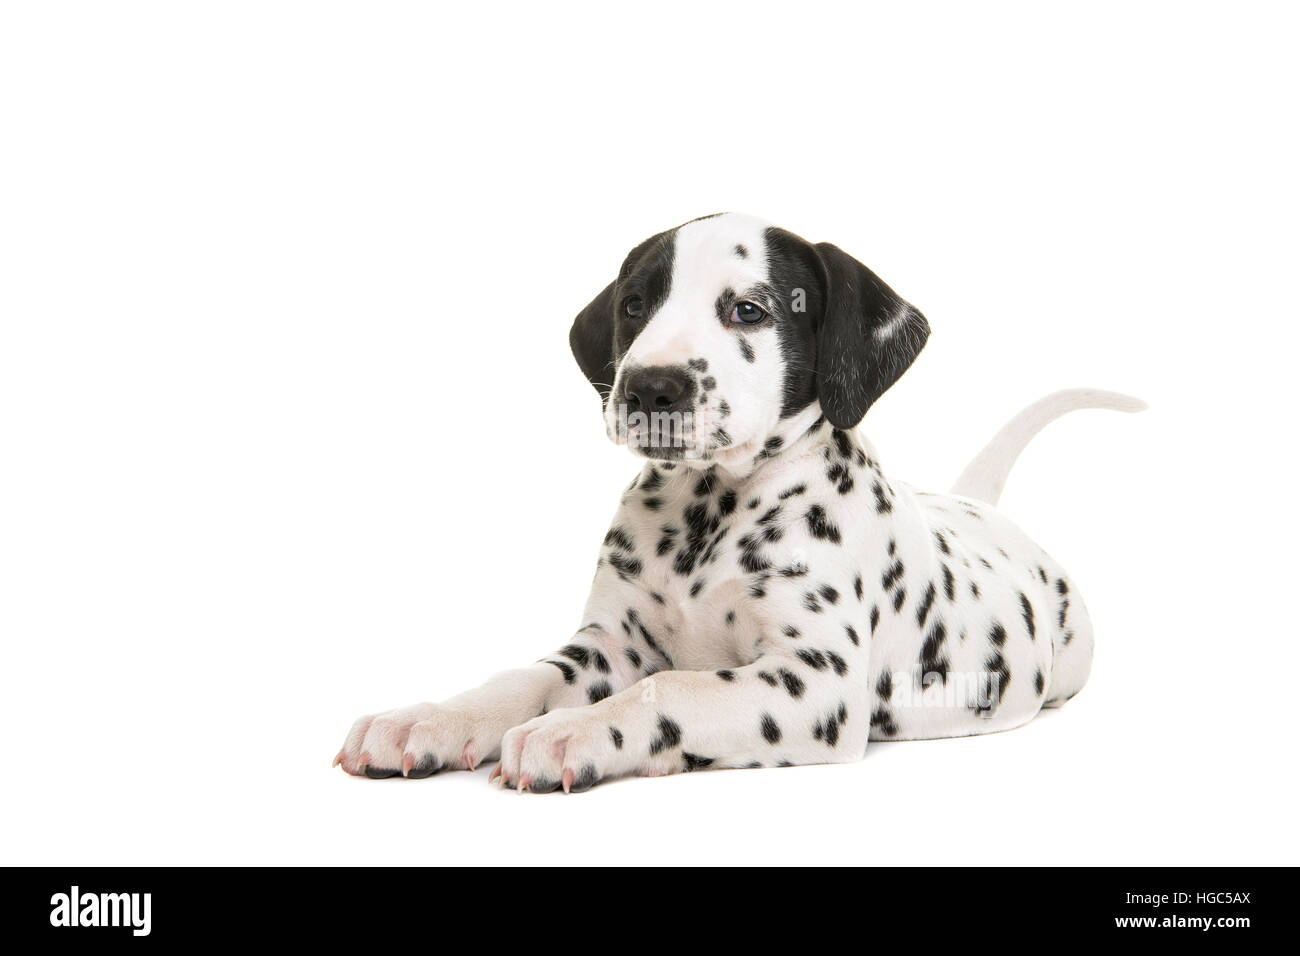 Cute dalmatian puppy lying down facing the camere isolated on a white background - Stock Image